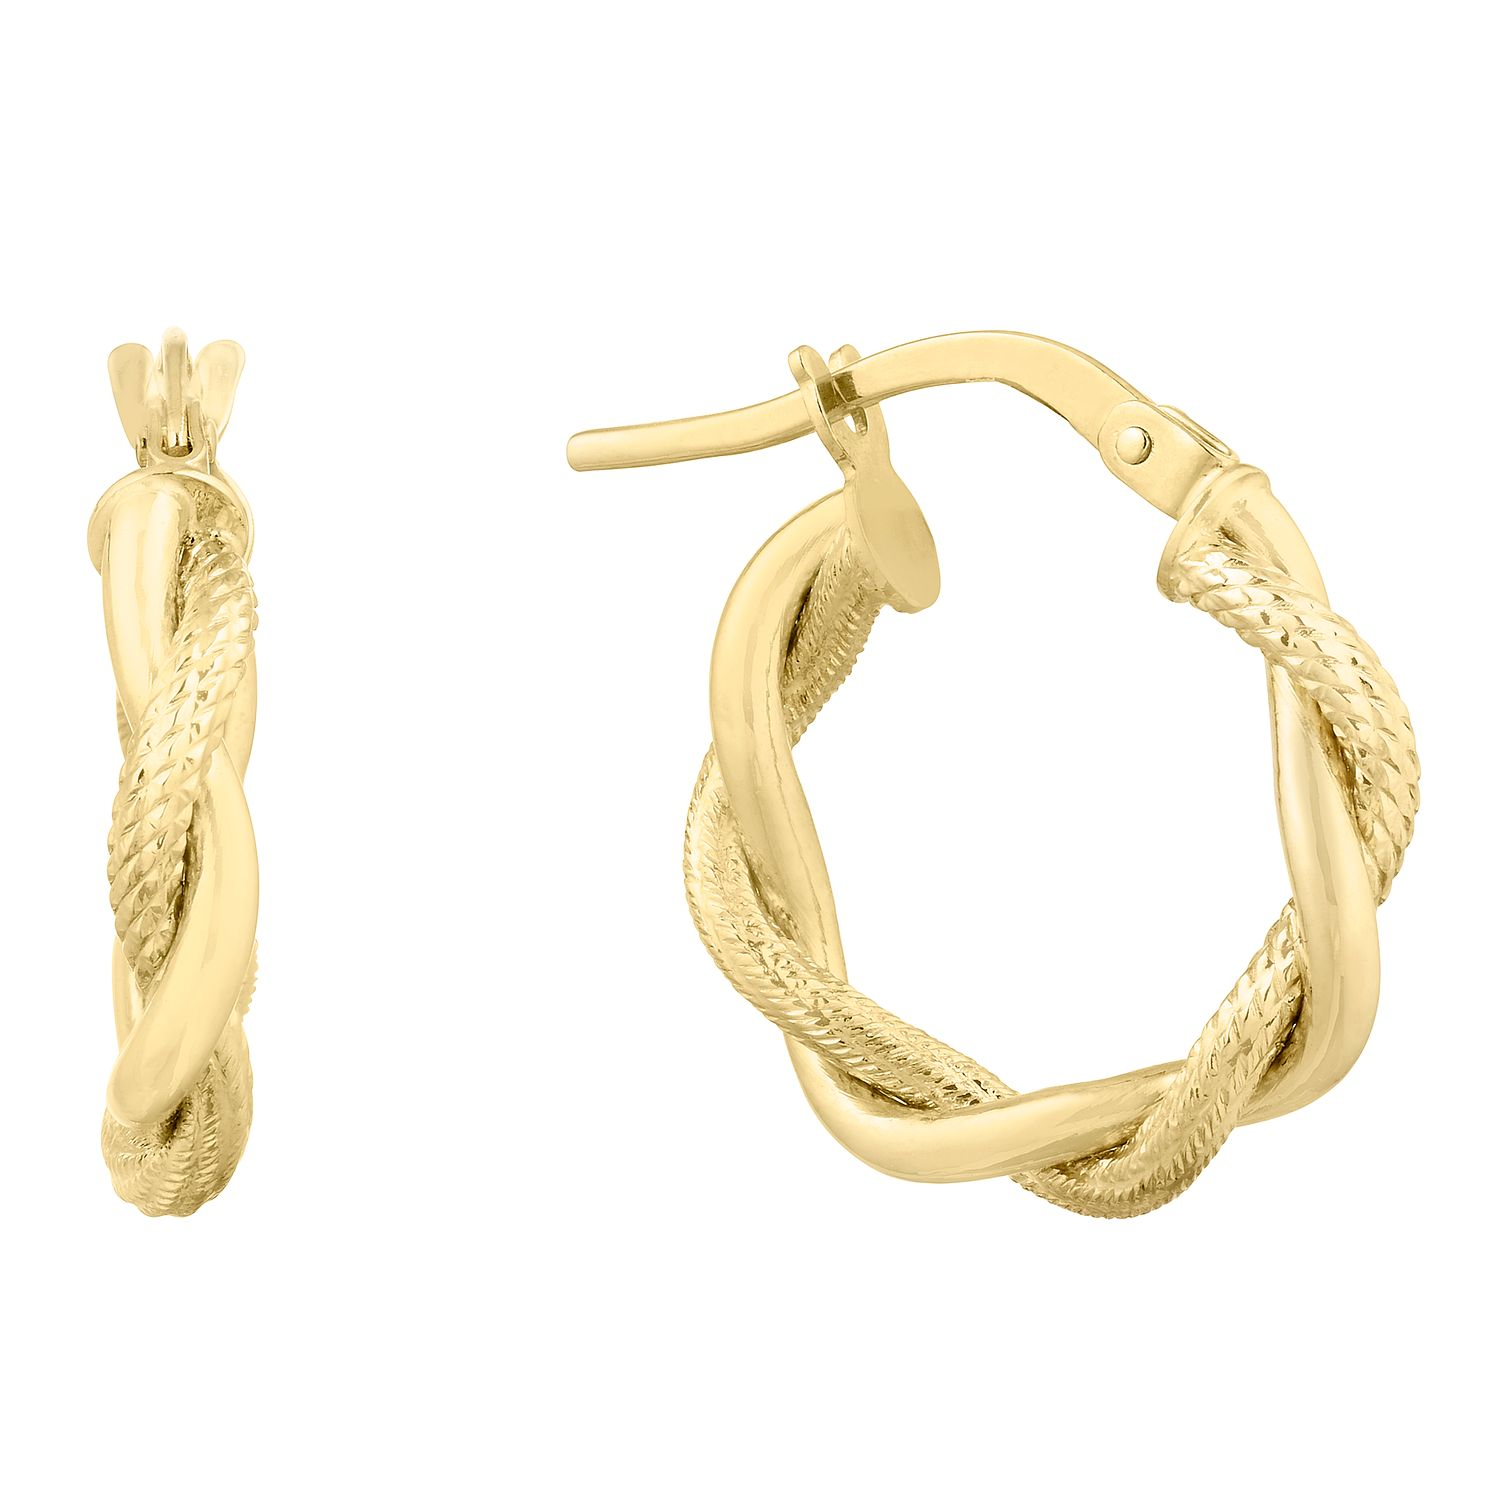 9ct Yellow Gold Entwined Rope Creoles Earrings - Product number 9665374